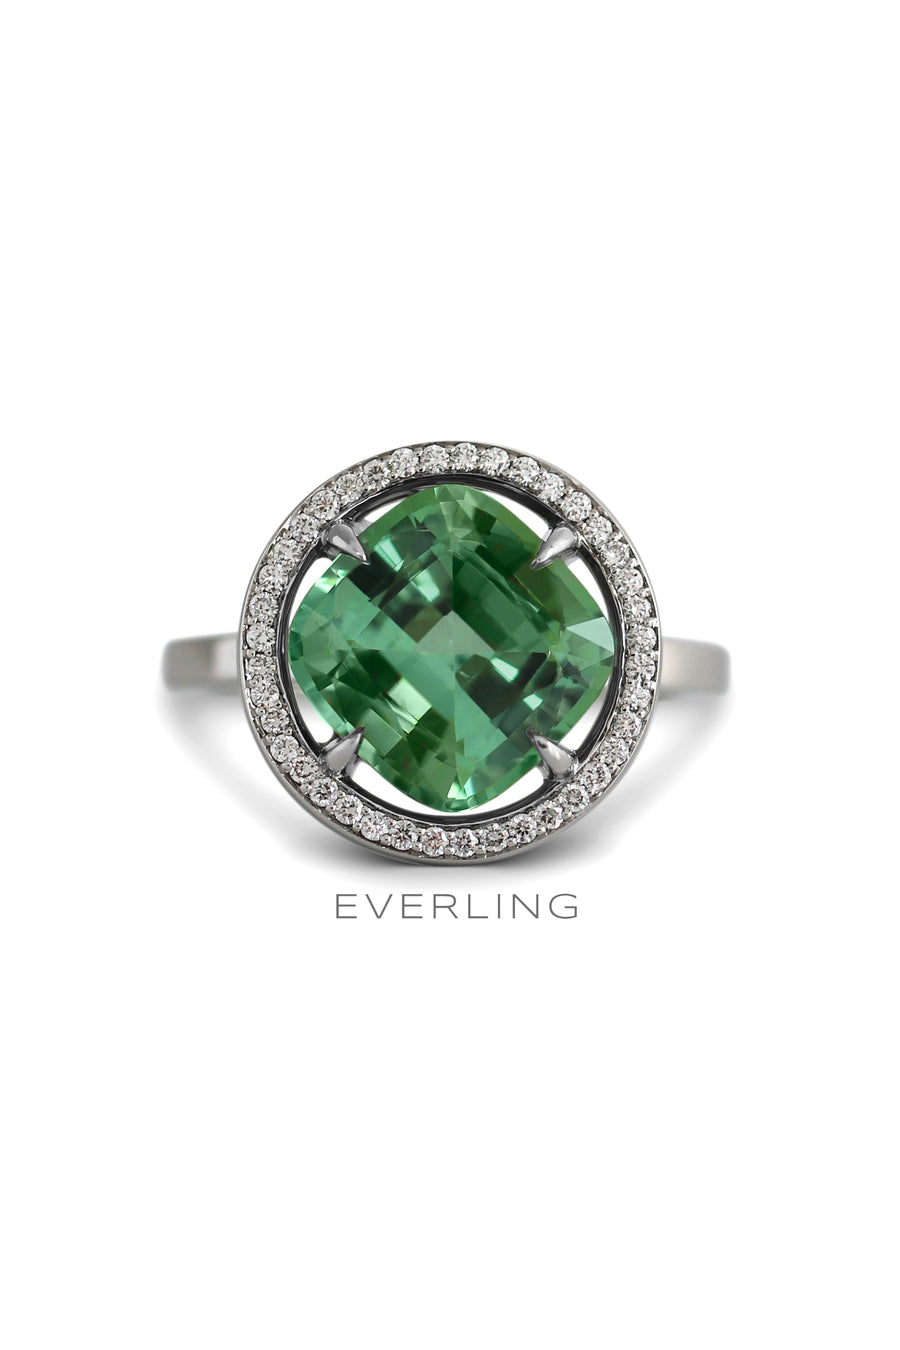 Recycled Platinum and Green Tourmaline ring with  Canadian sourced Diamonds #tourmalinering #designerjewelry www.everlingjewelry.com